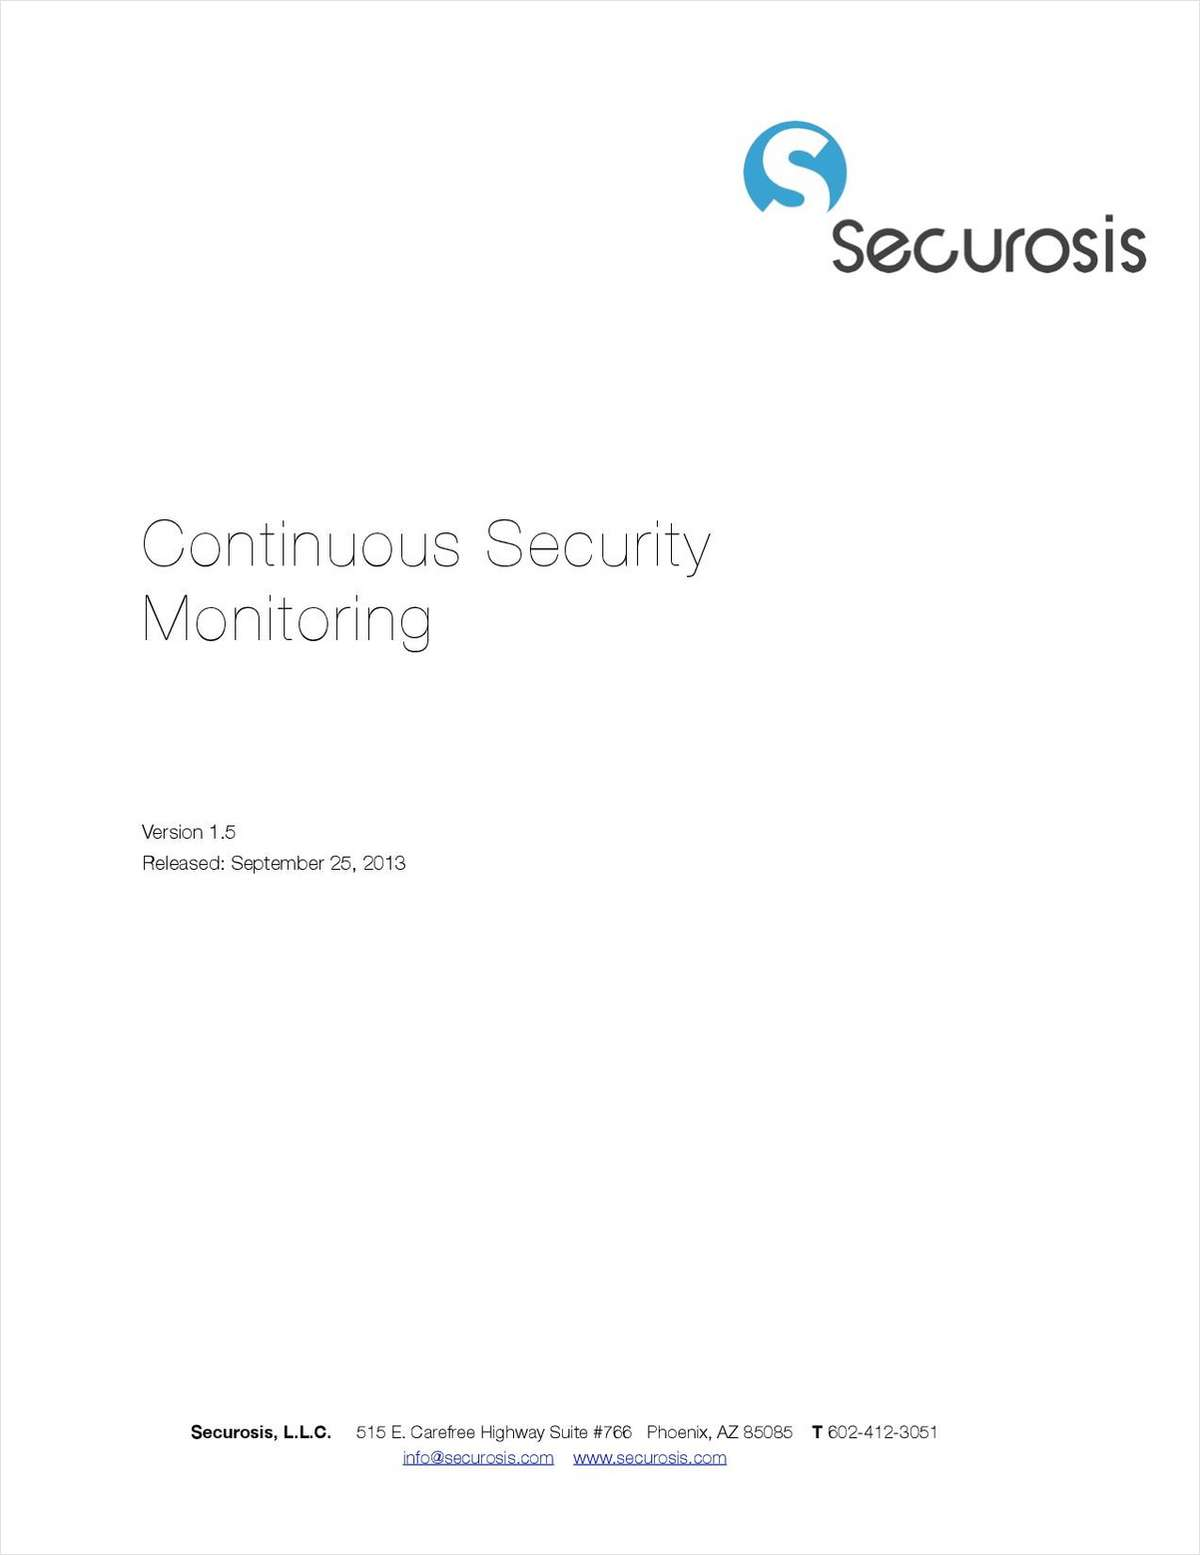 Continuous Security Monitoring (CSM)